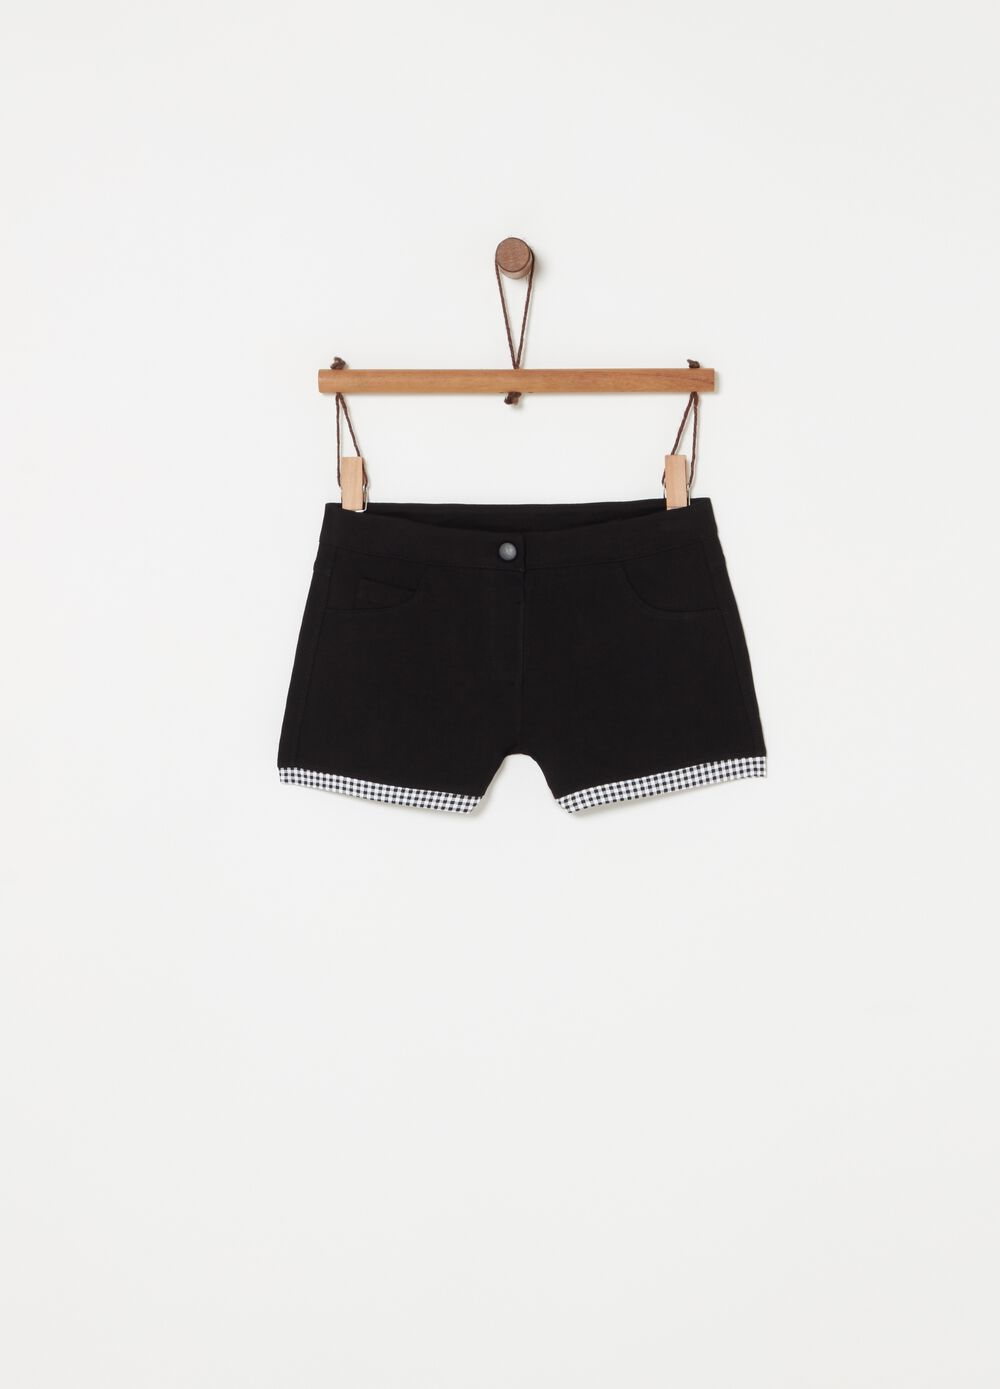 Shorts with pockets, check inserts and button